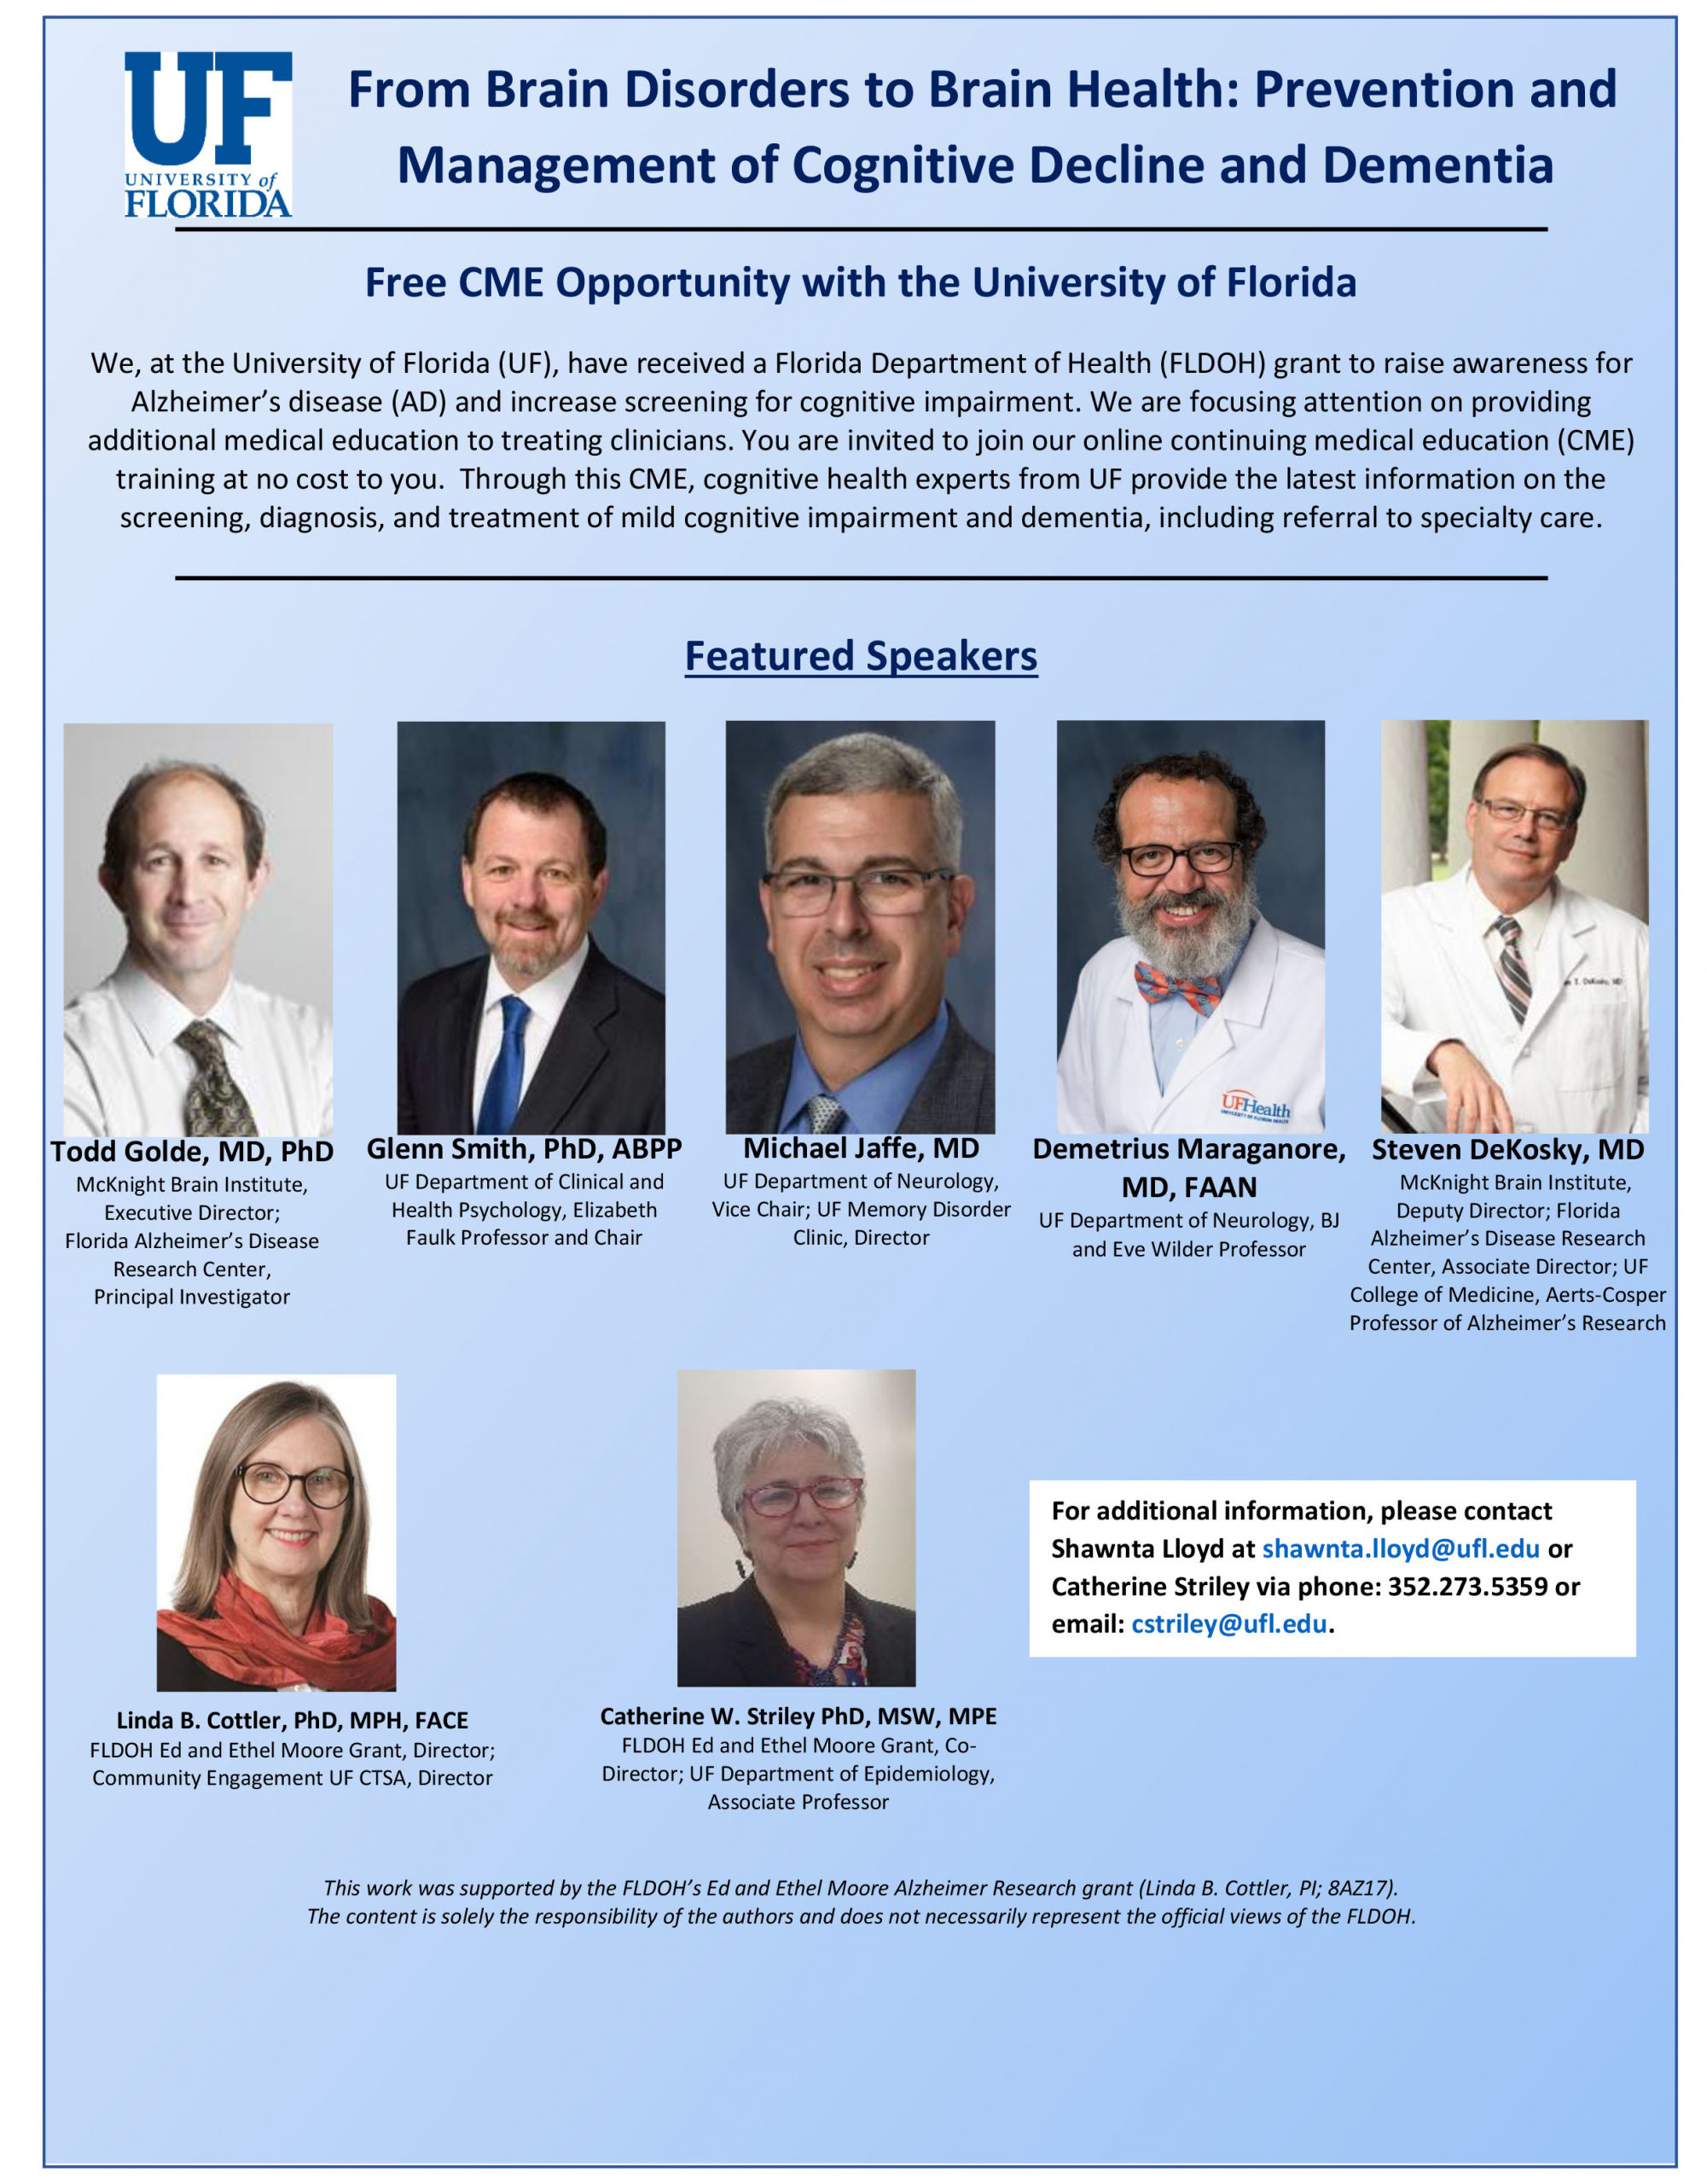 Image of the CME From Brain Disorders to Brain Health Flyer